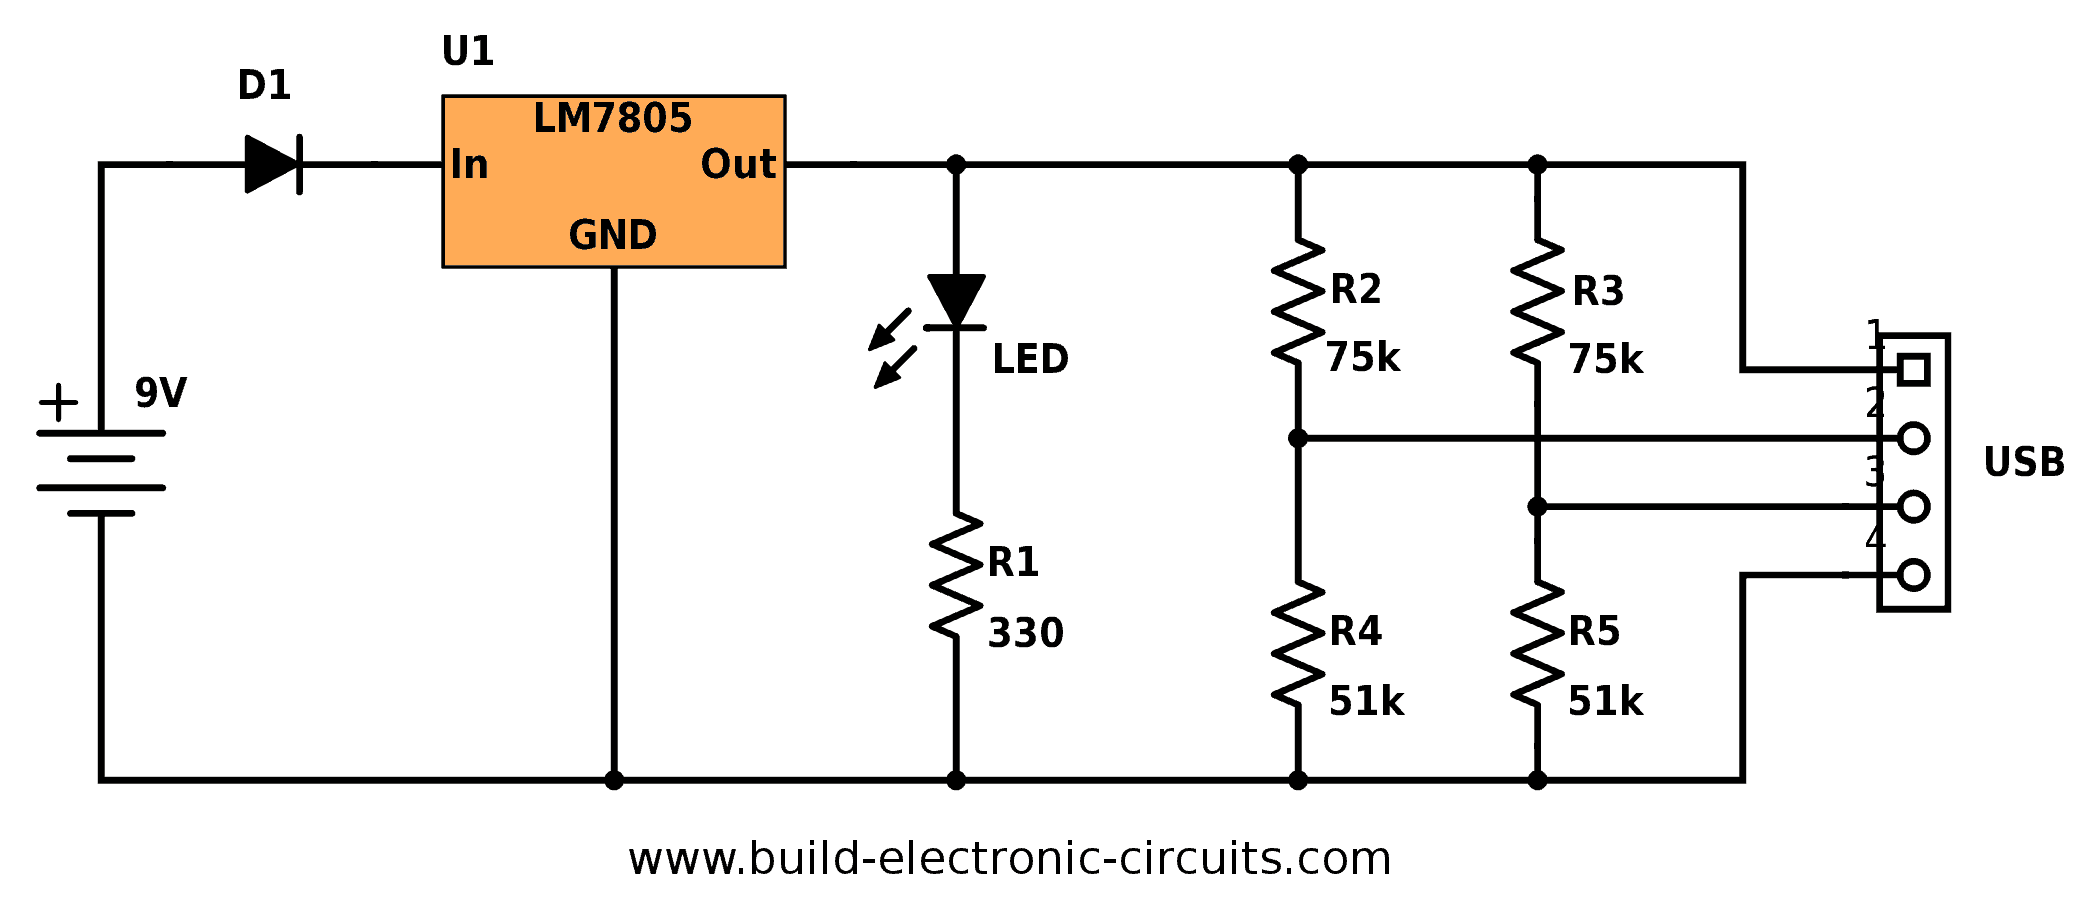 5f63 lester charger 36 volt wiring diagram | wiring resources  wiring resources